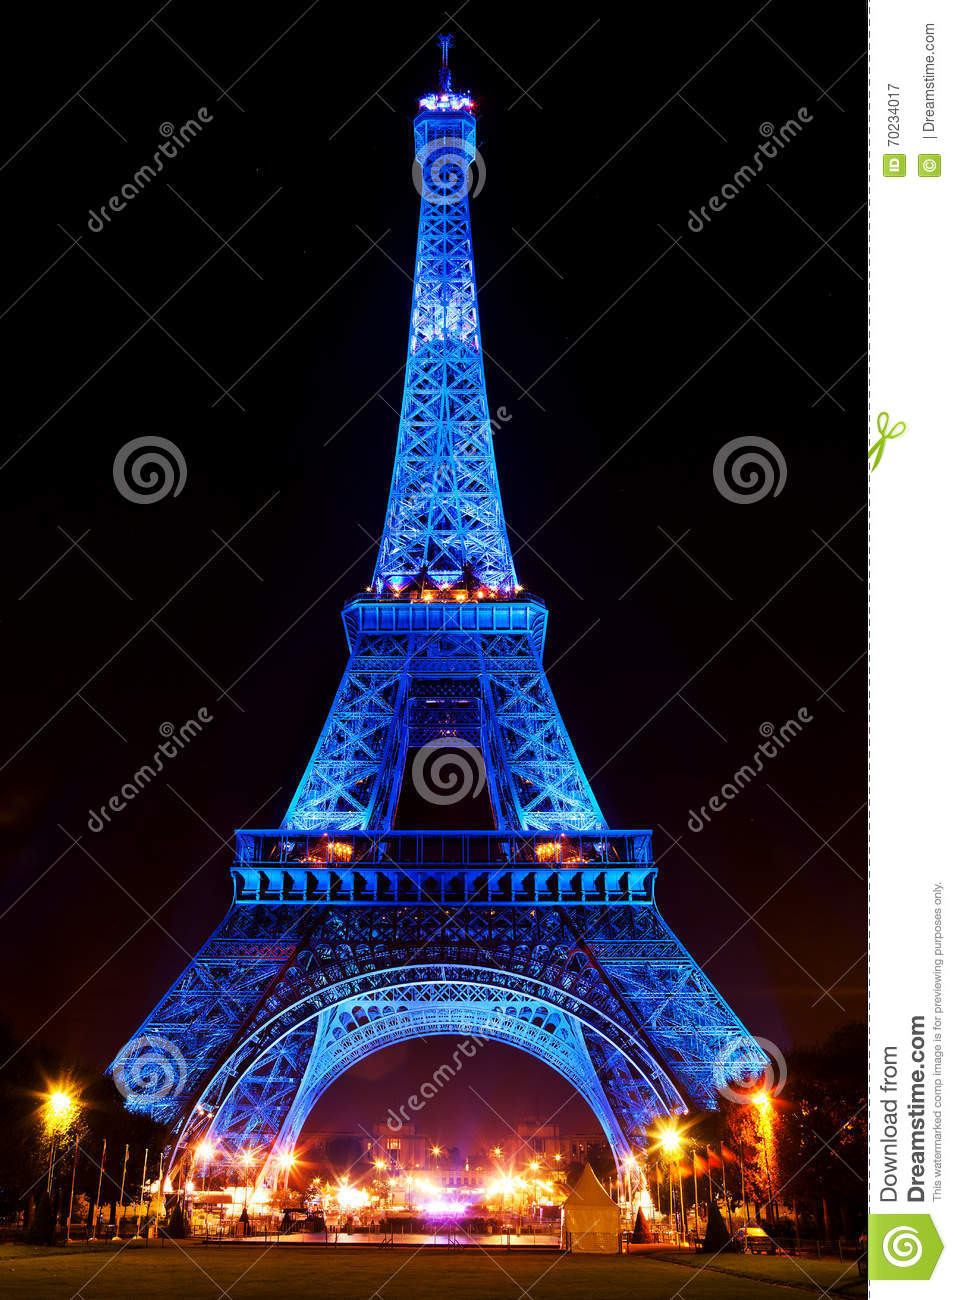 Eiffel Tower Glowing Blue Illuminated At Night In Paris, France ...